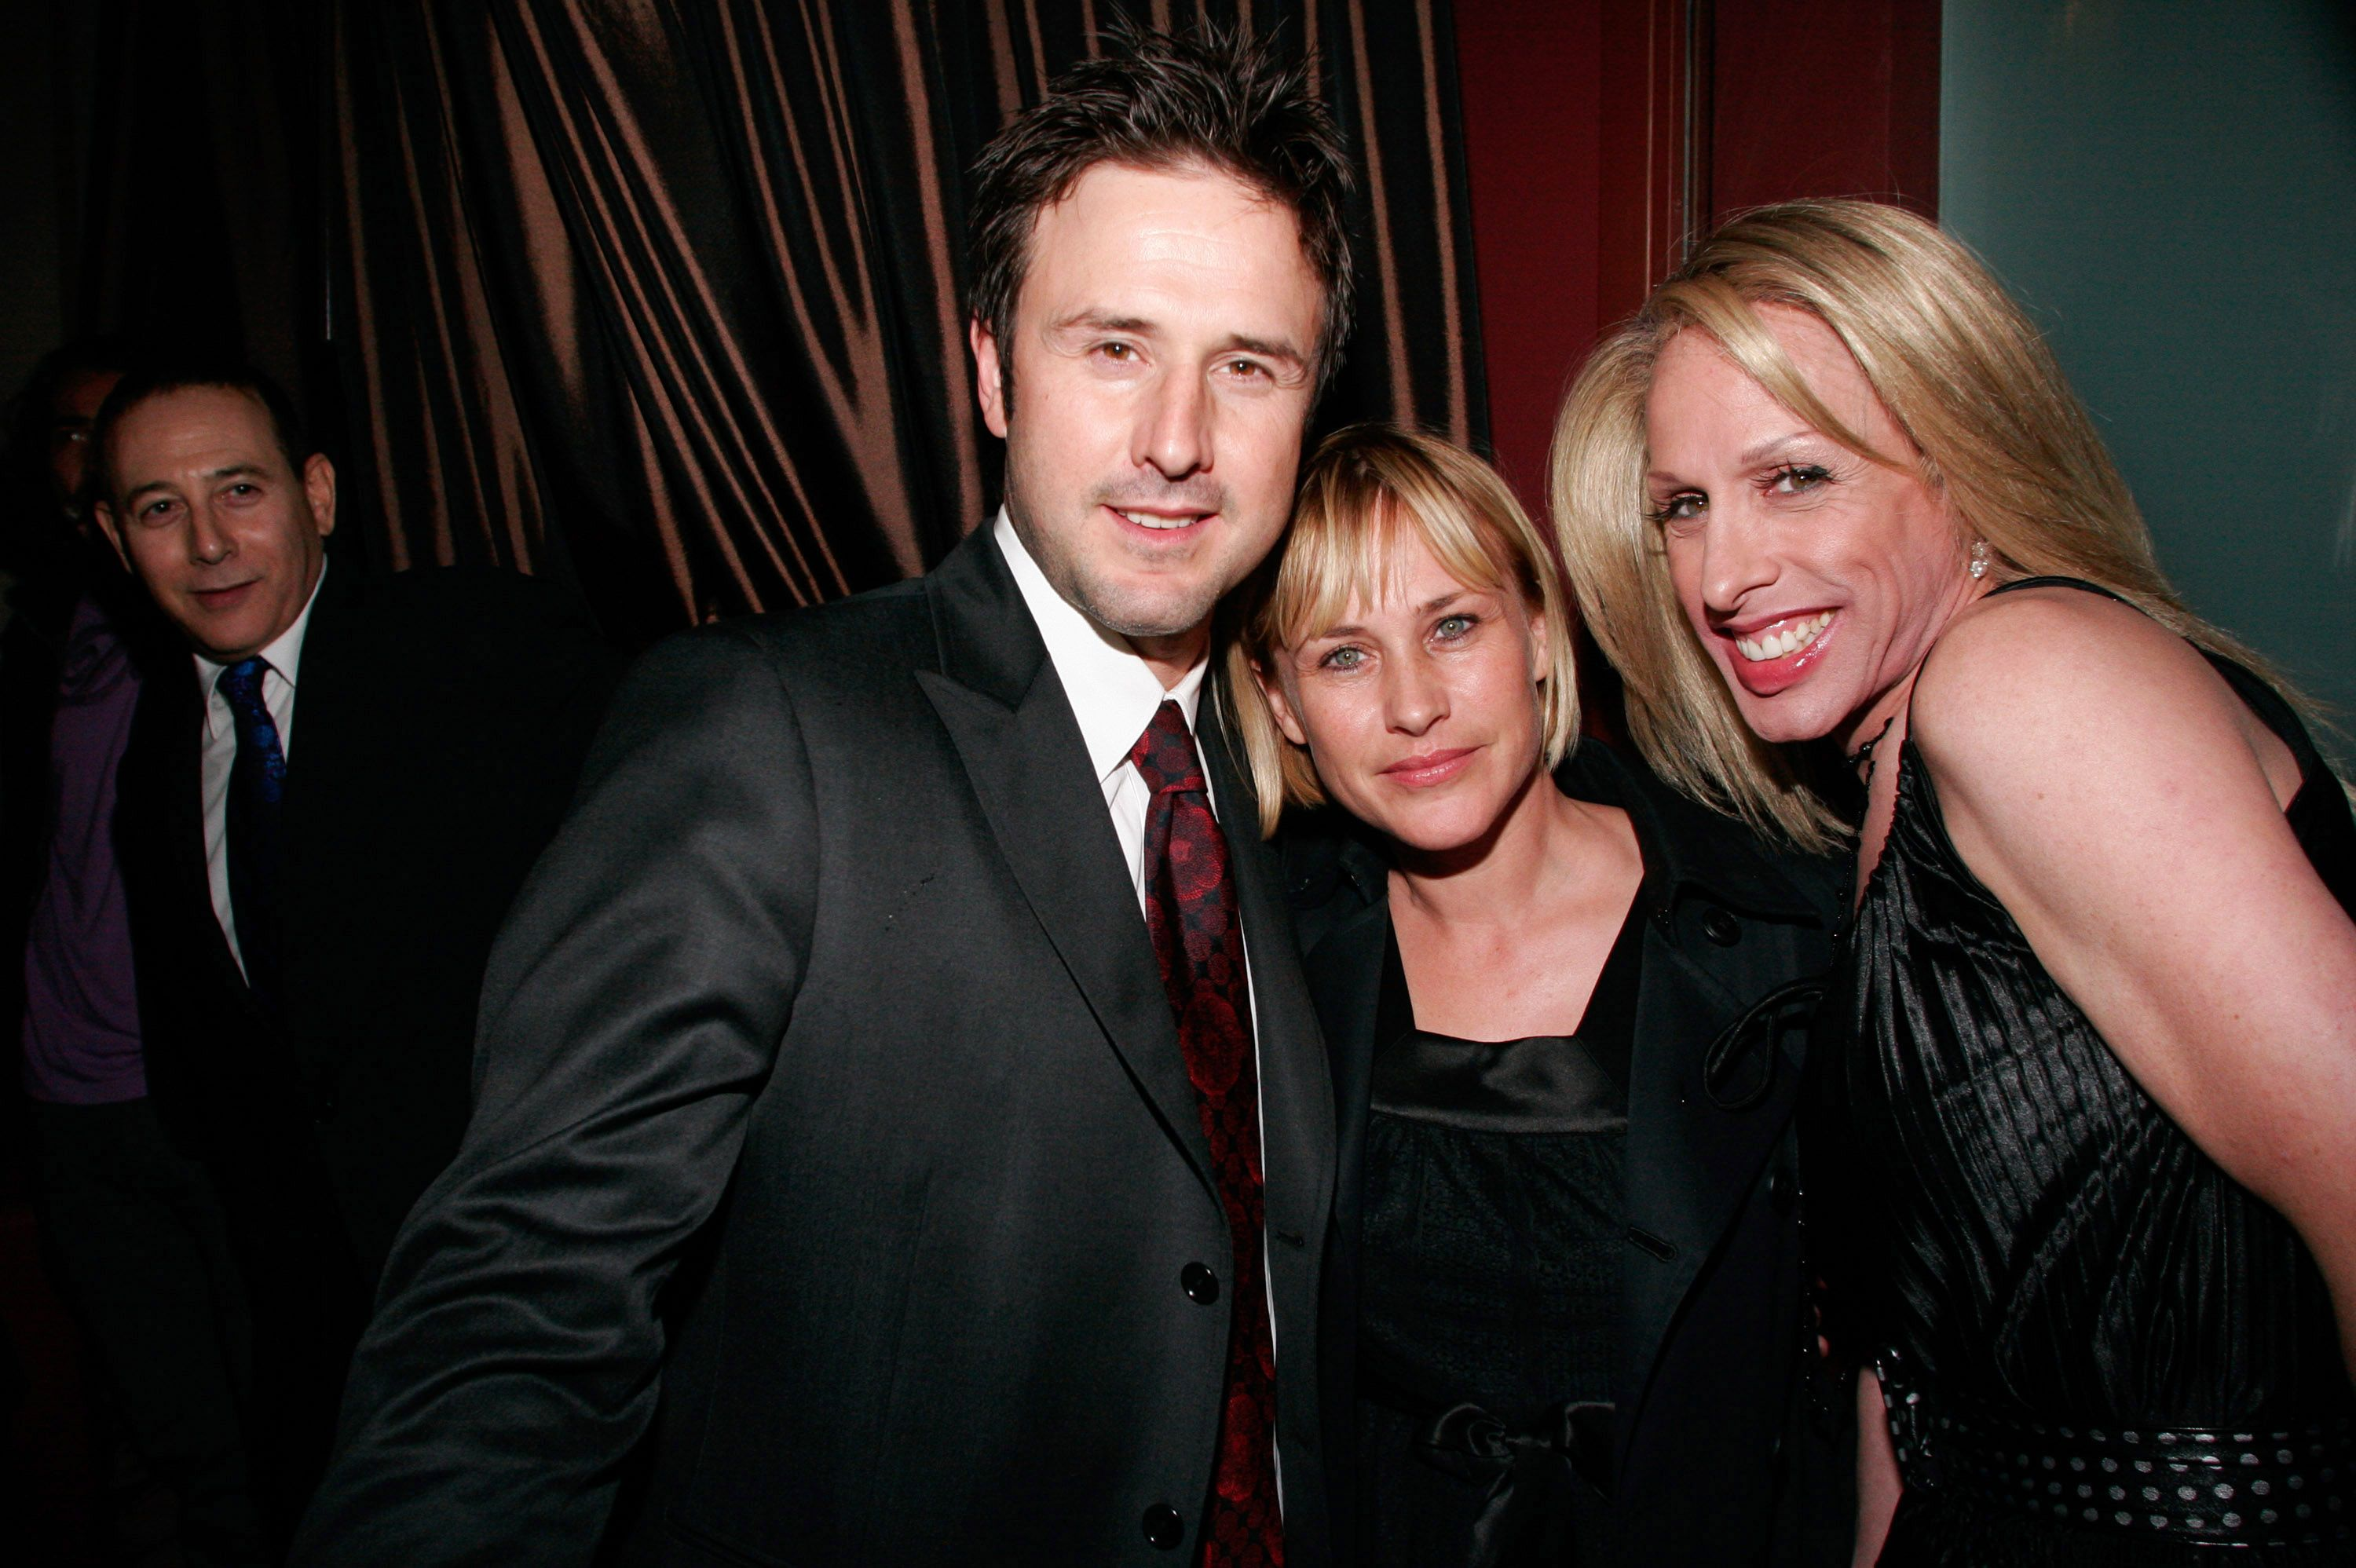 Alexis Arquette with siblings David Arquette, and Patricia Arquette   Source: Getty Images